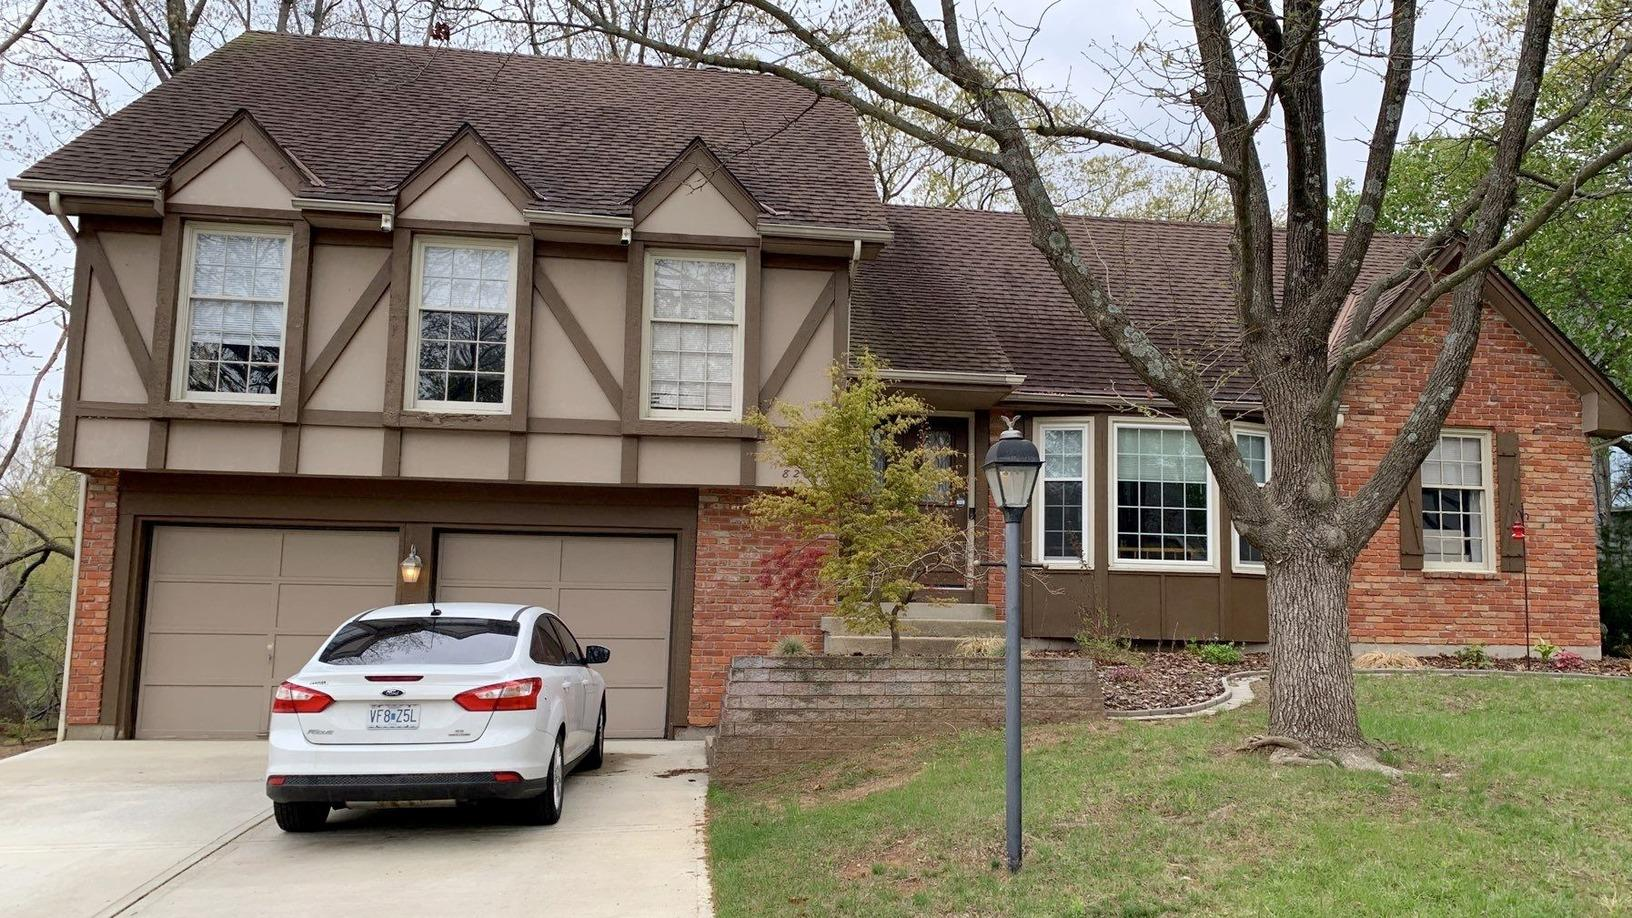 Gutters, Trim and New Paint on a Home in Kansas City, MO - Before Photo